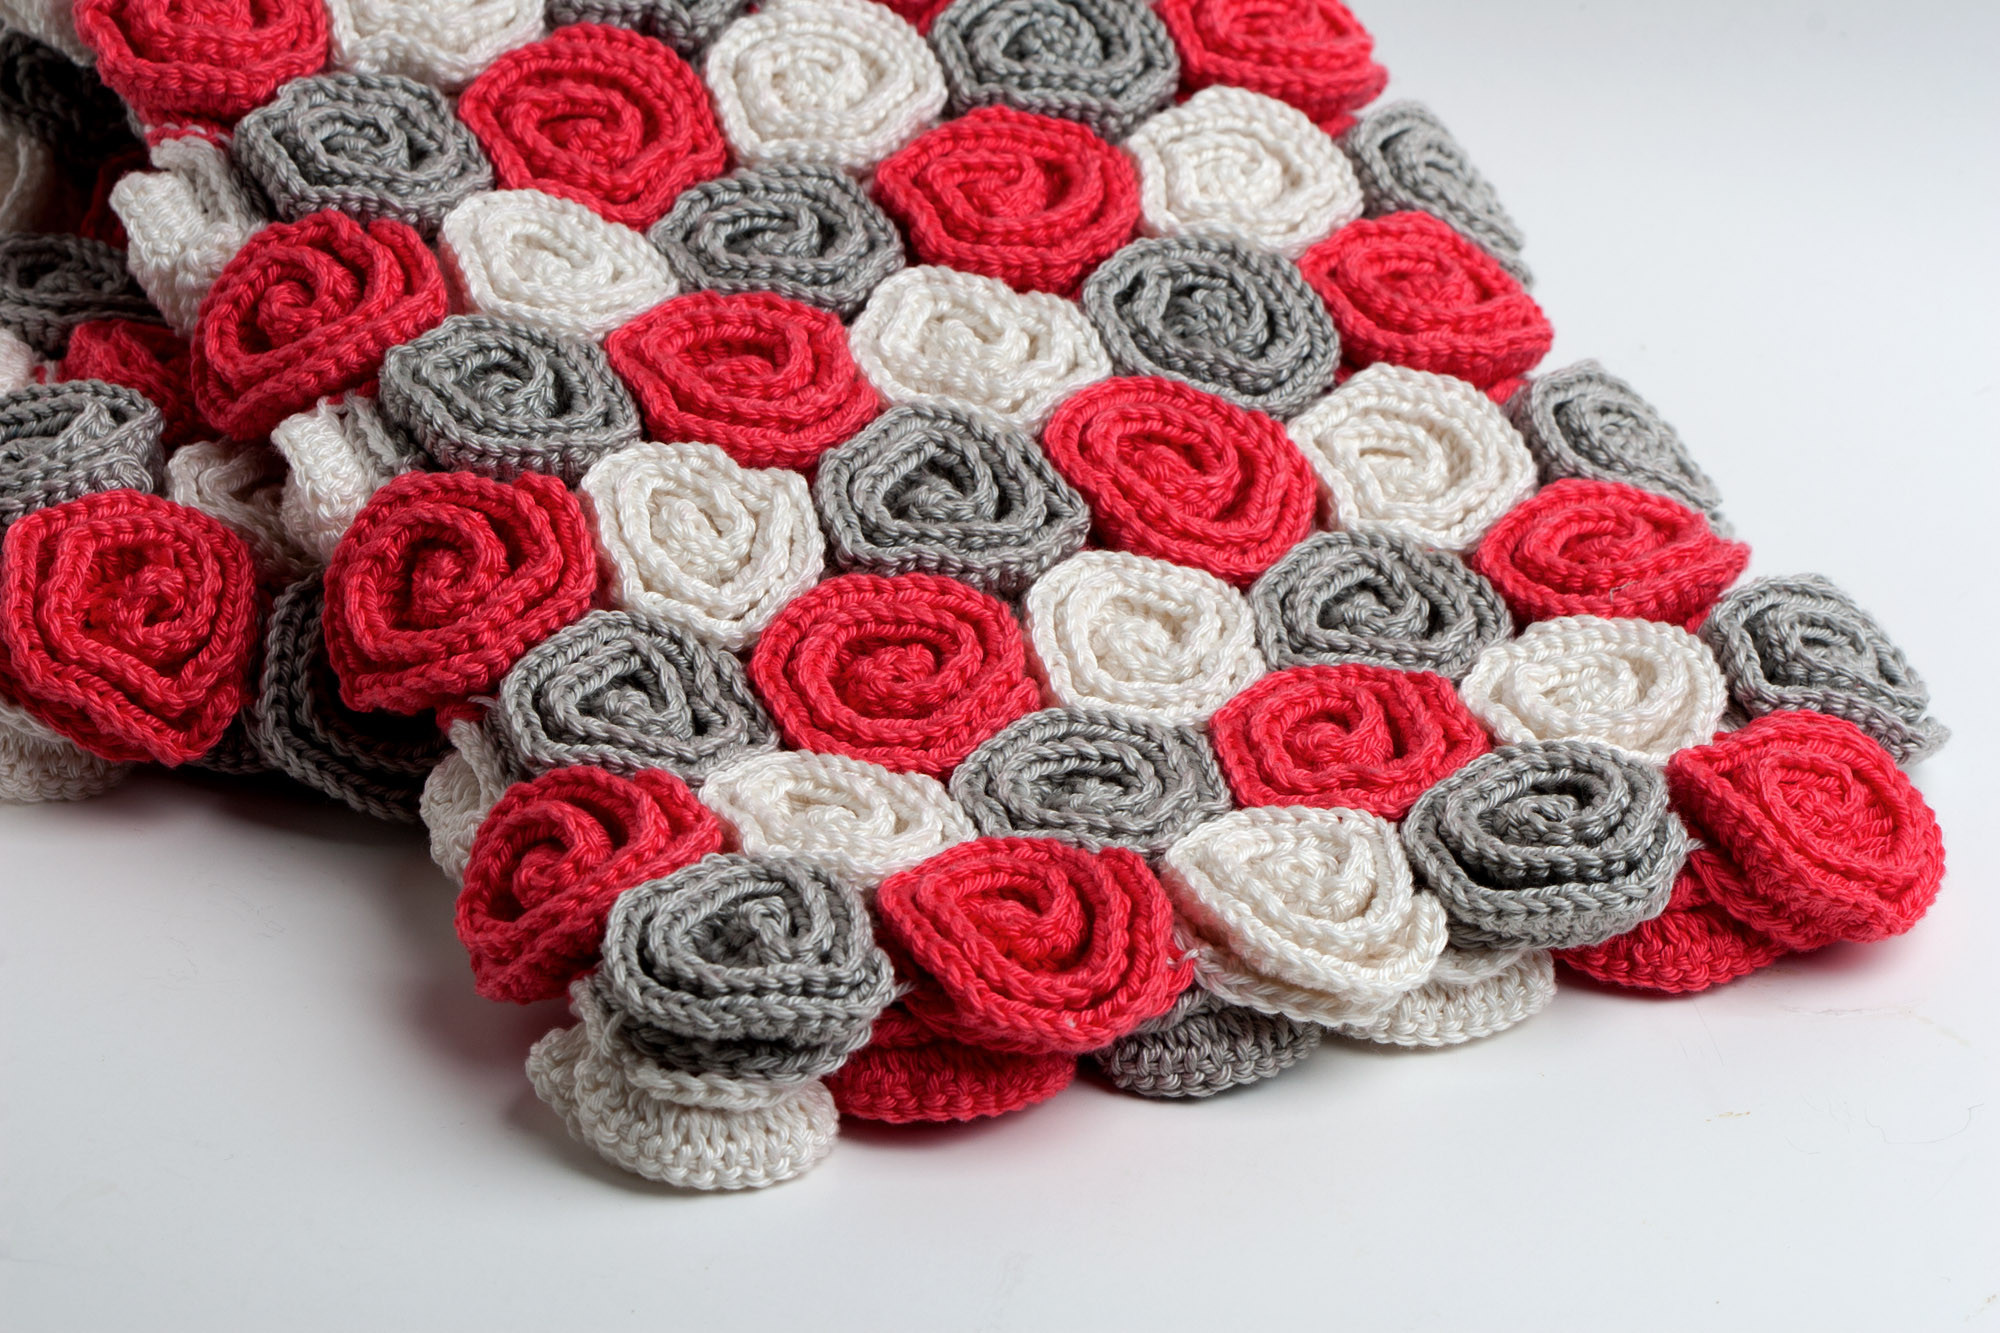 Crochet Baby Blanket Lovely Crochet Pattern Rose Field – Yarn Twist Of Great 49 Pictures Crochet Baby Blanket